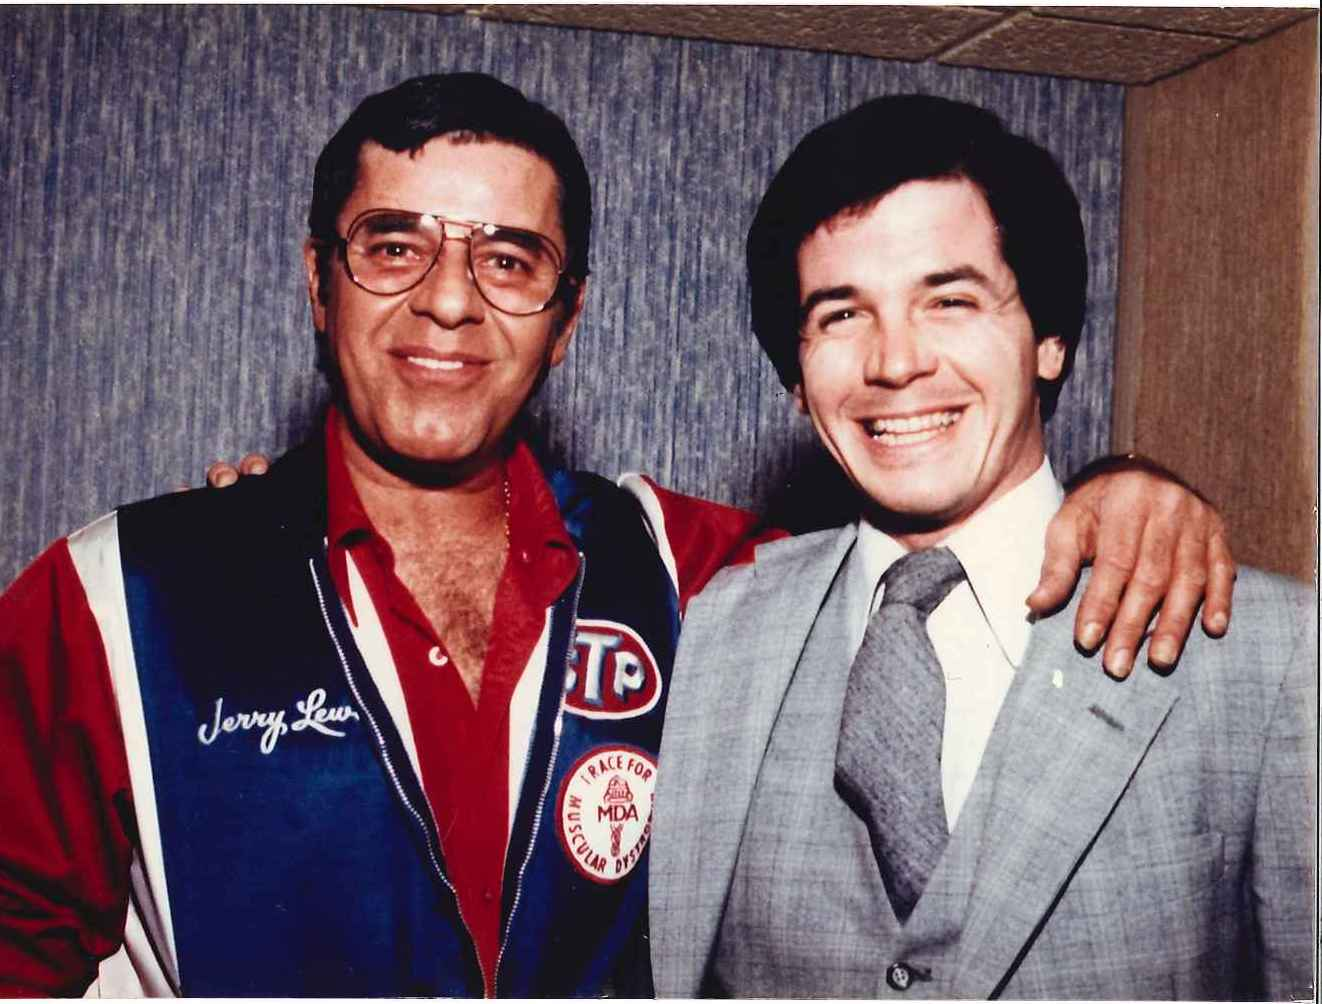 Jerry Lewis and Steve Cody